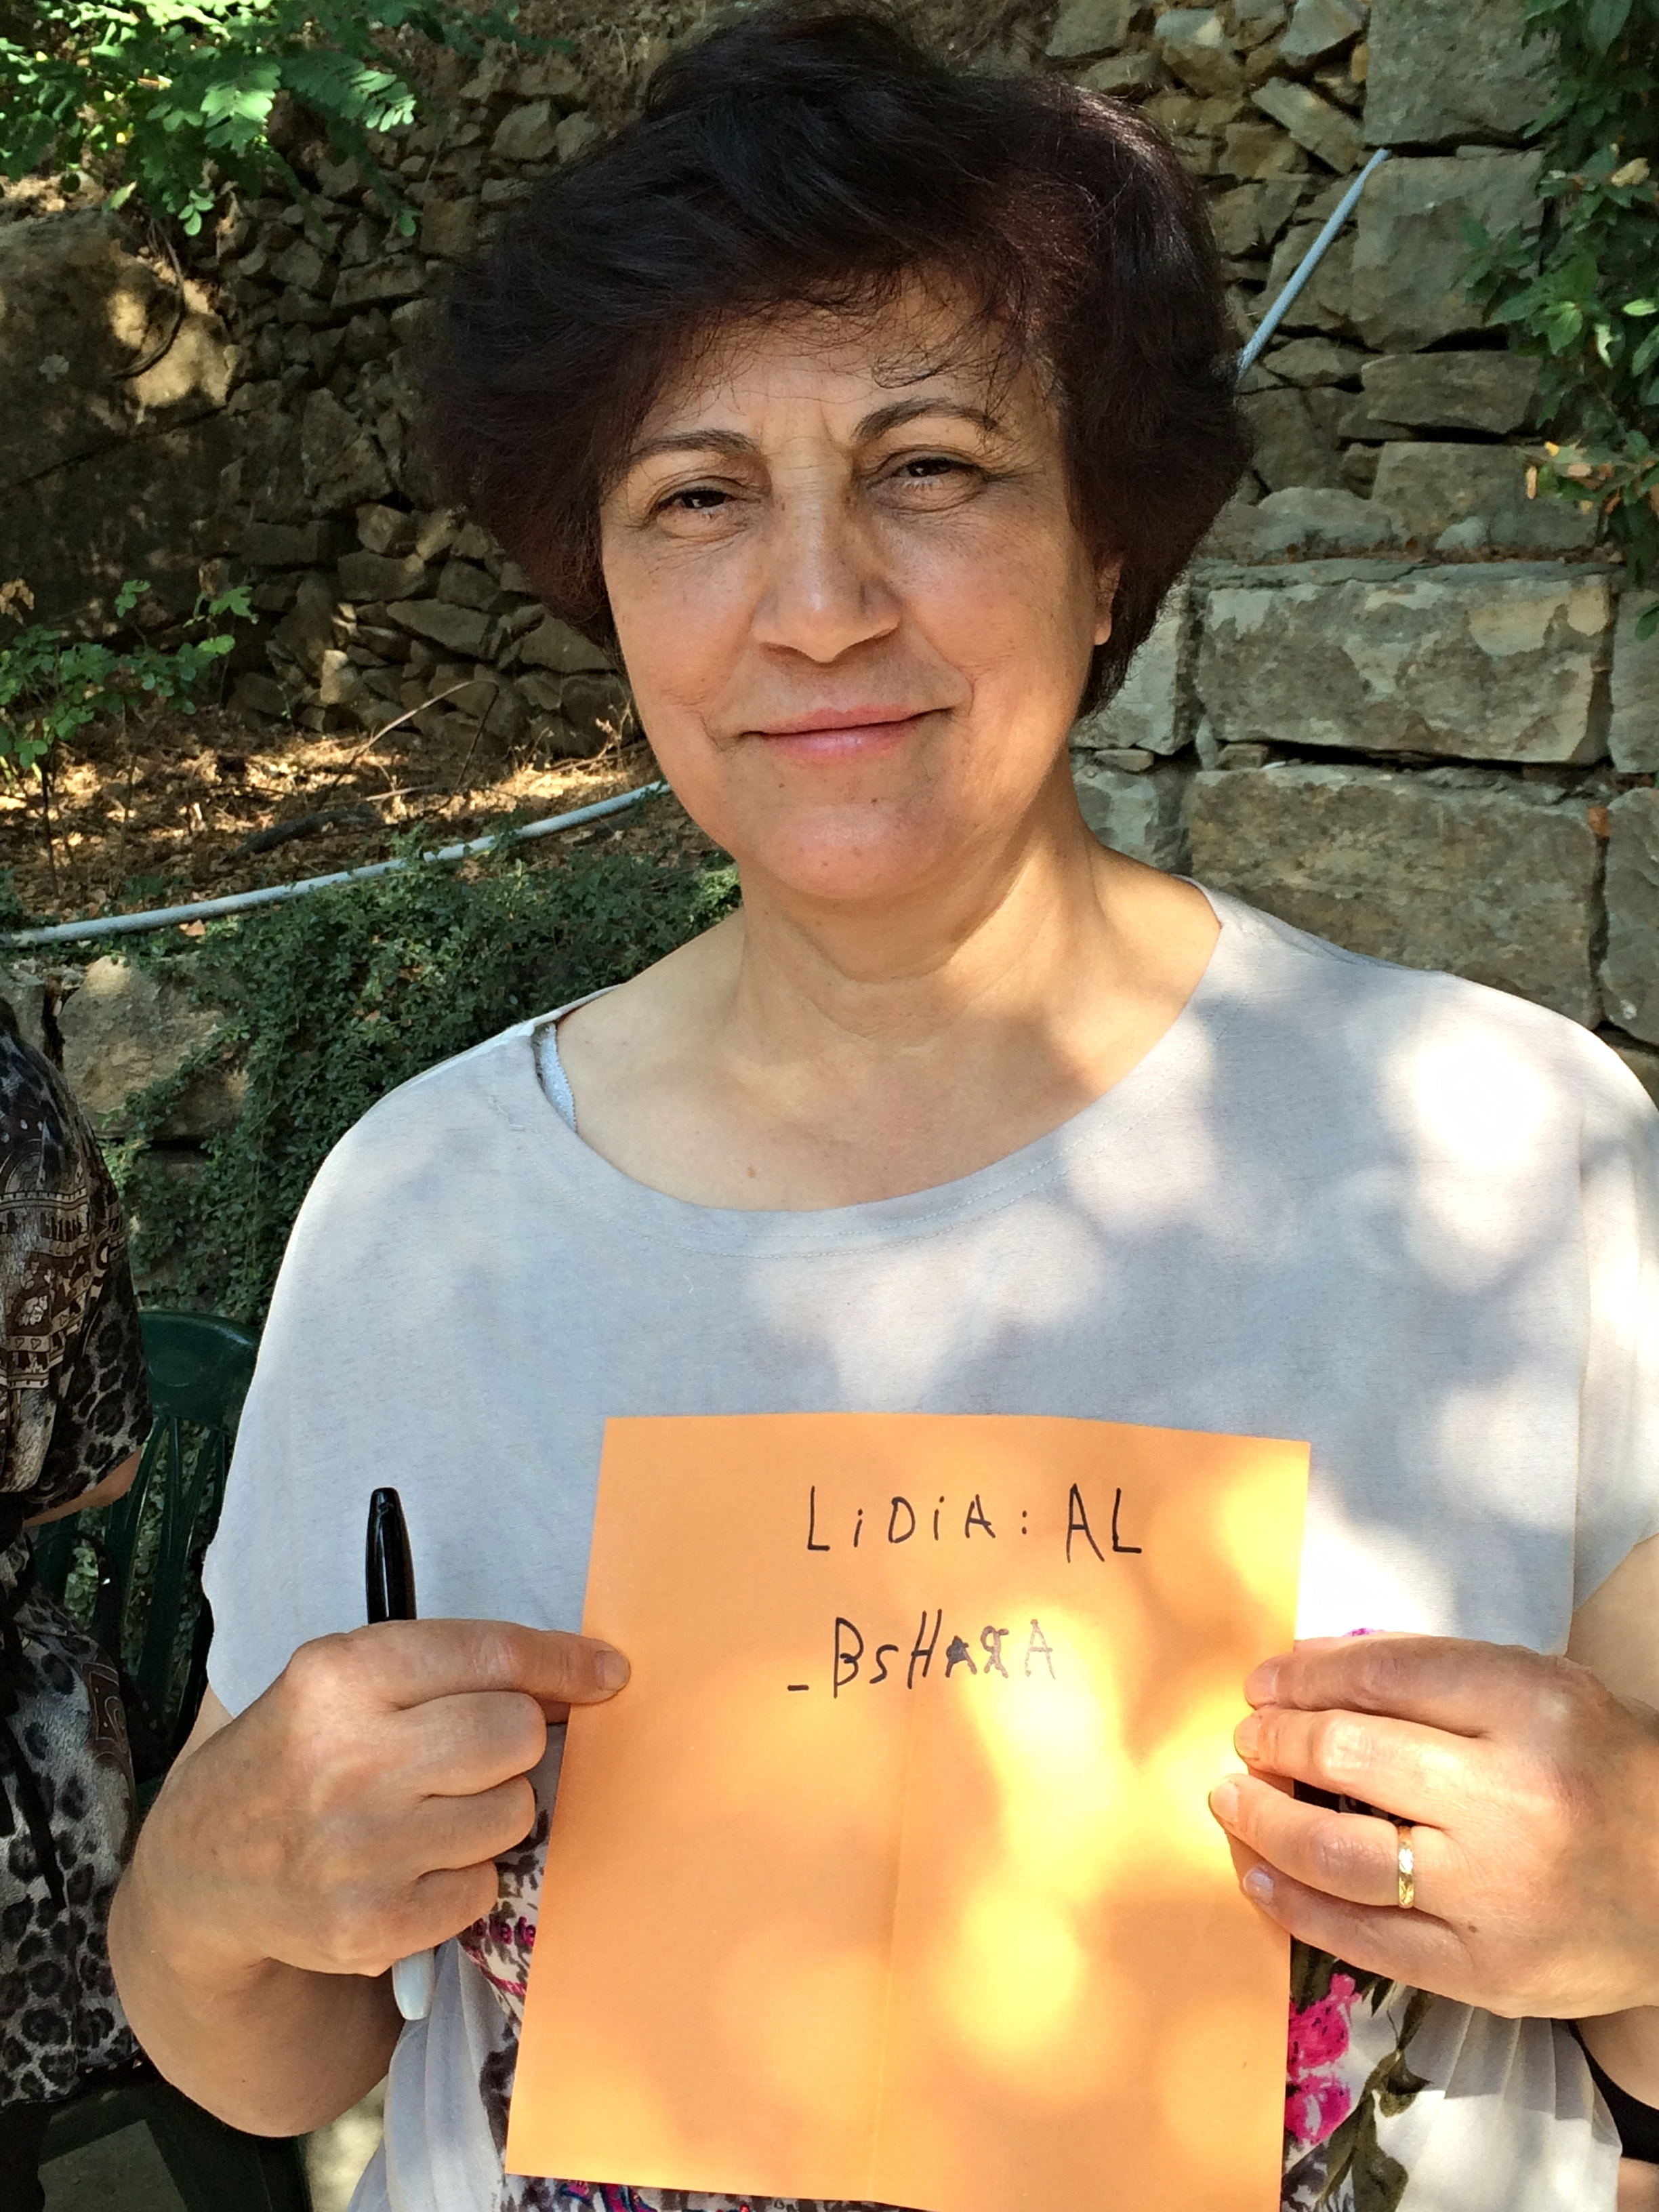 Lydia is from Kharaba, although now she lives in Damascus and has experienced great loss.